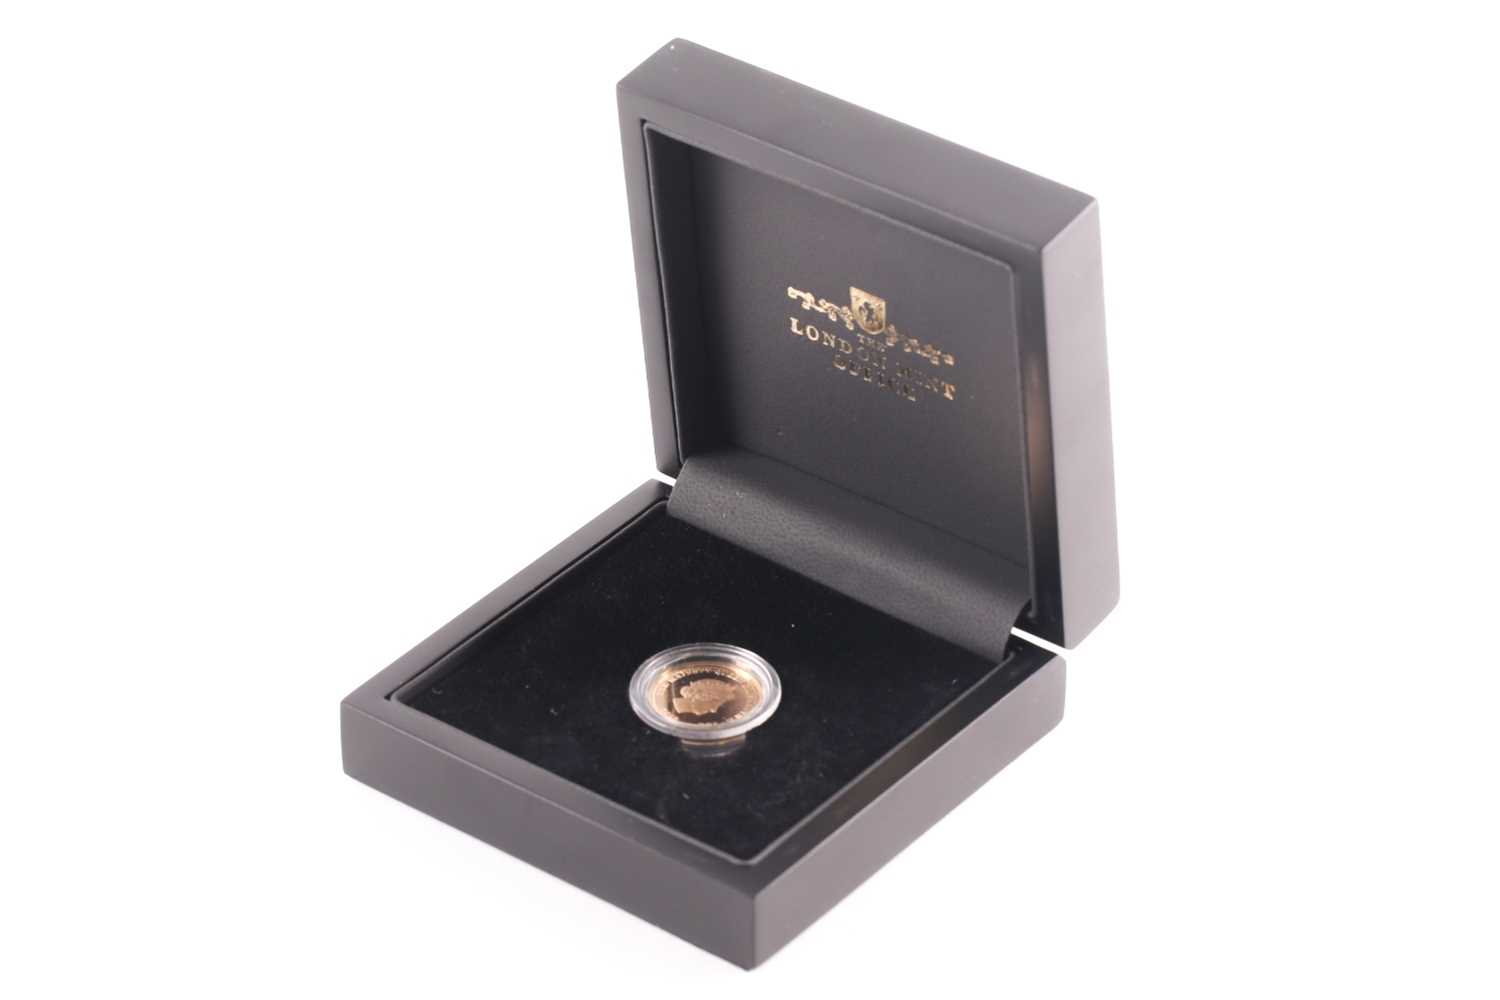 A 2013 Vivat Regina proof sovereign, London Mint Office, boxed, in a capsule and with certificate.